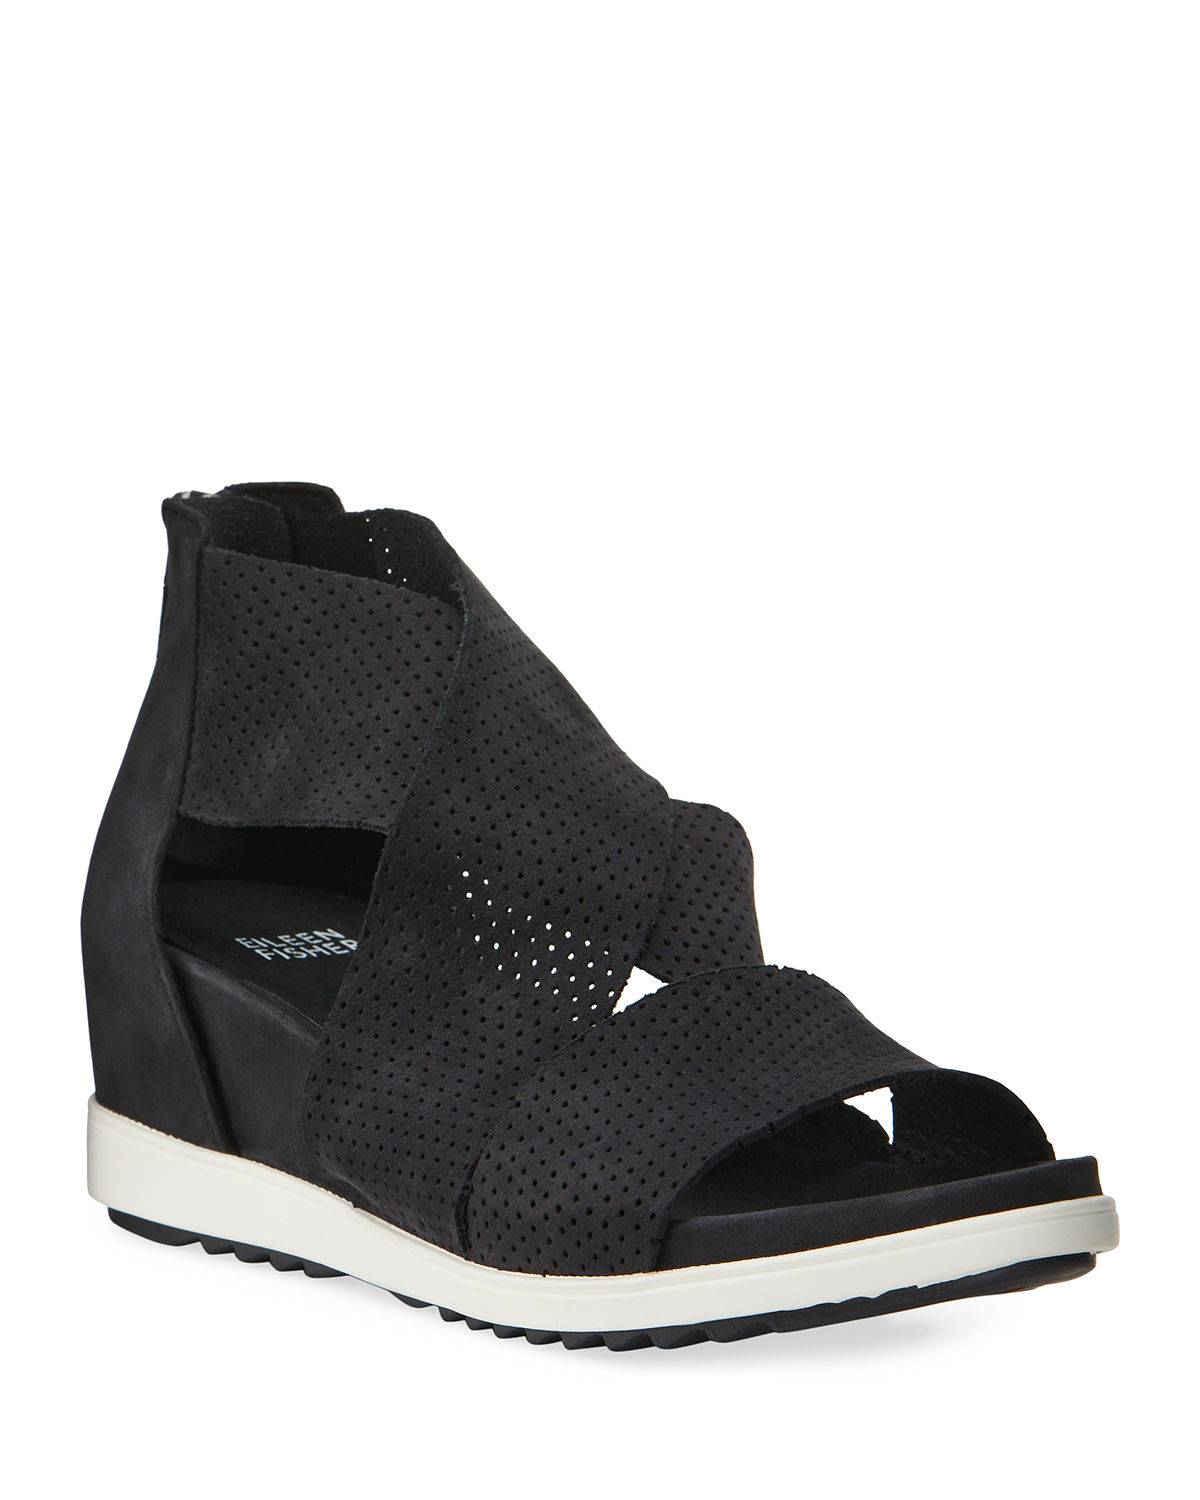 Eileen Fisher Voice Perforated Demi-Wedge Sport Sandals - Size: 8.5B / 38.5EU